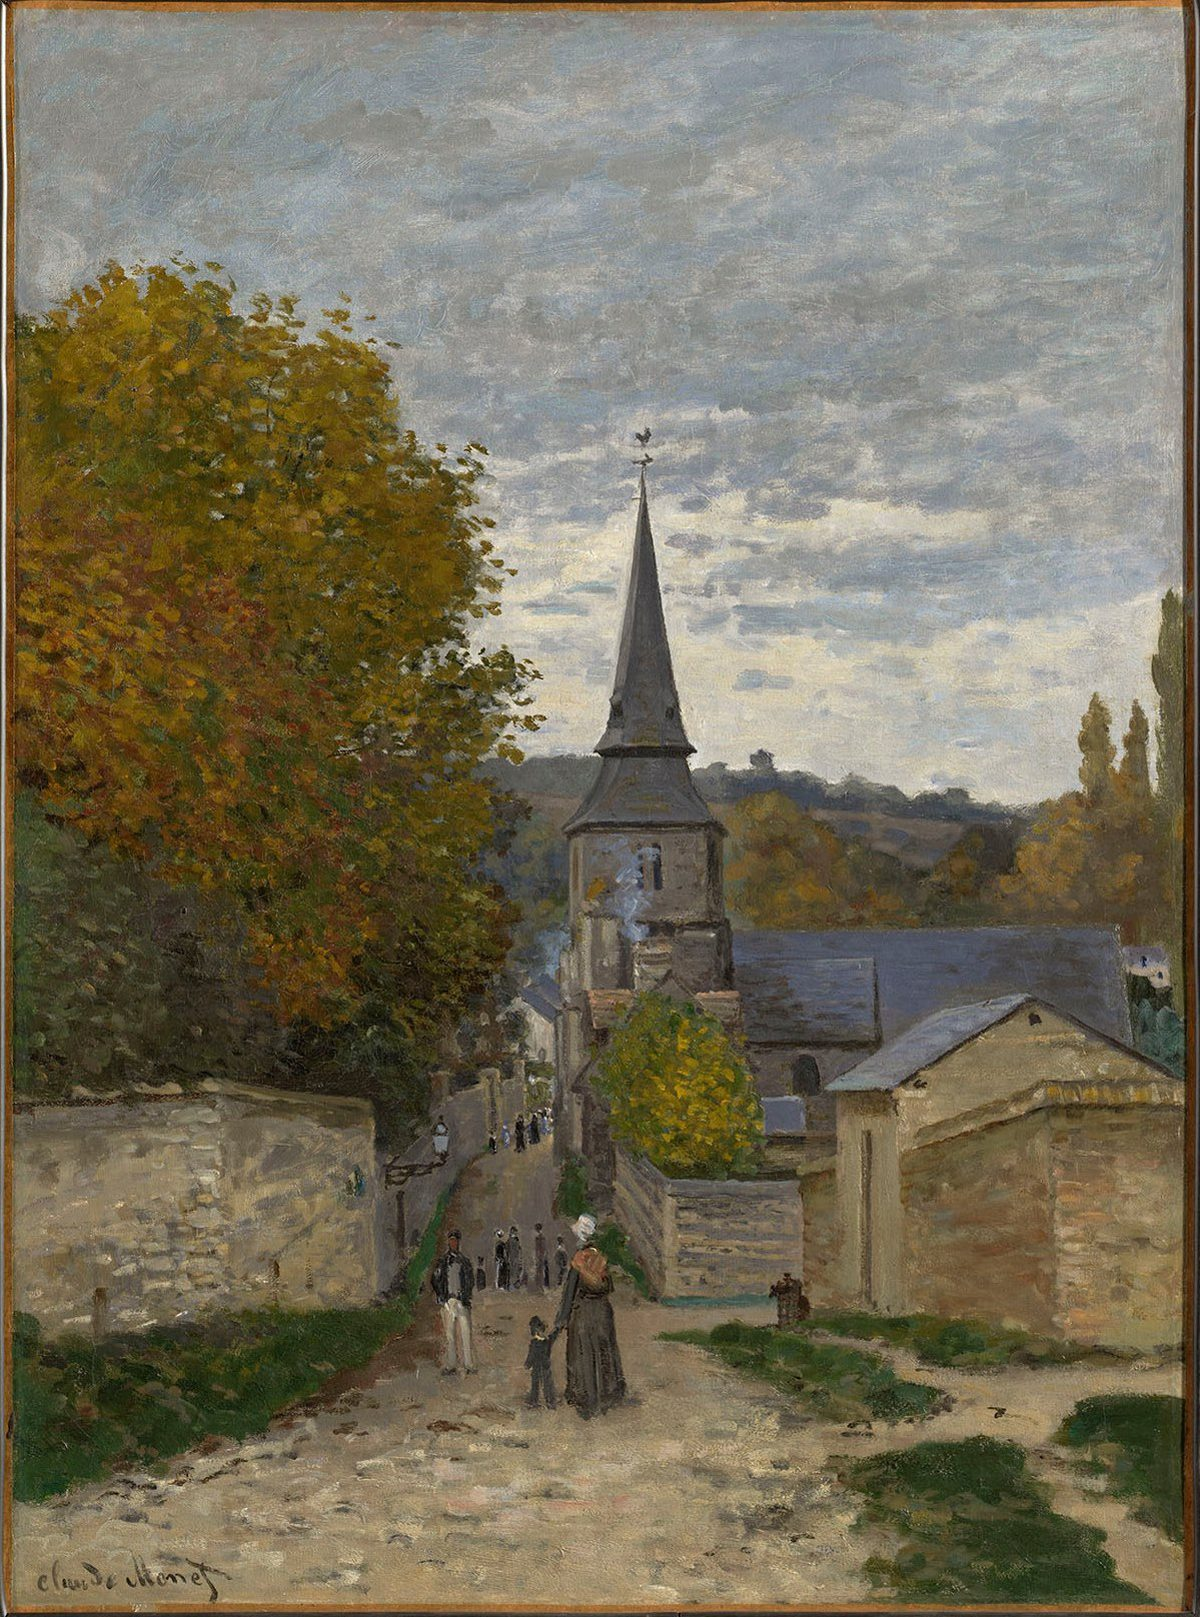 Made of Monet | Architecture Today